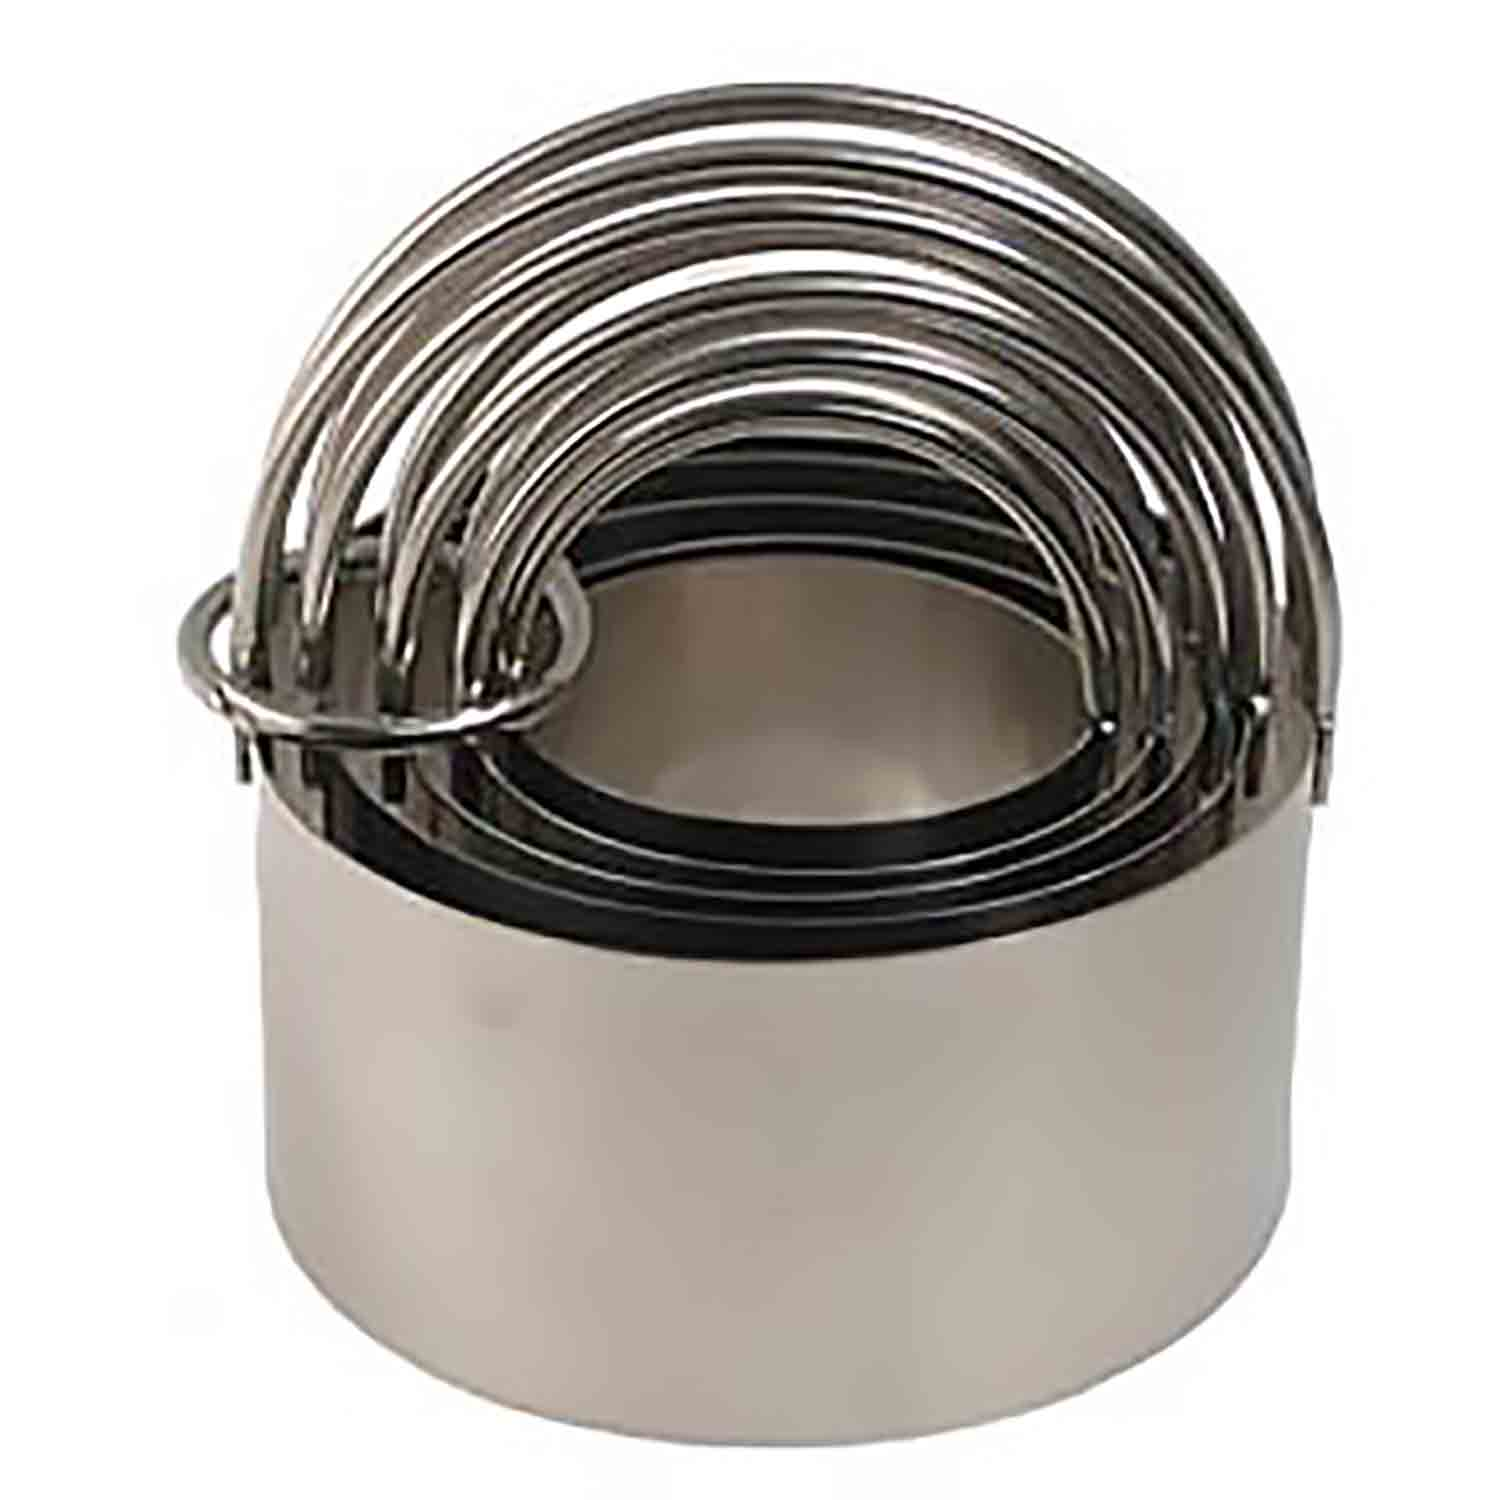 Stainless Steel Biscuit Cutter Set